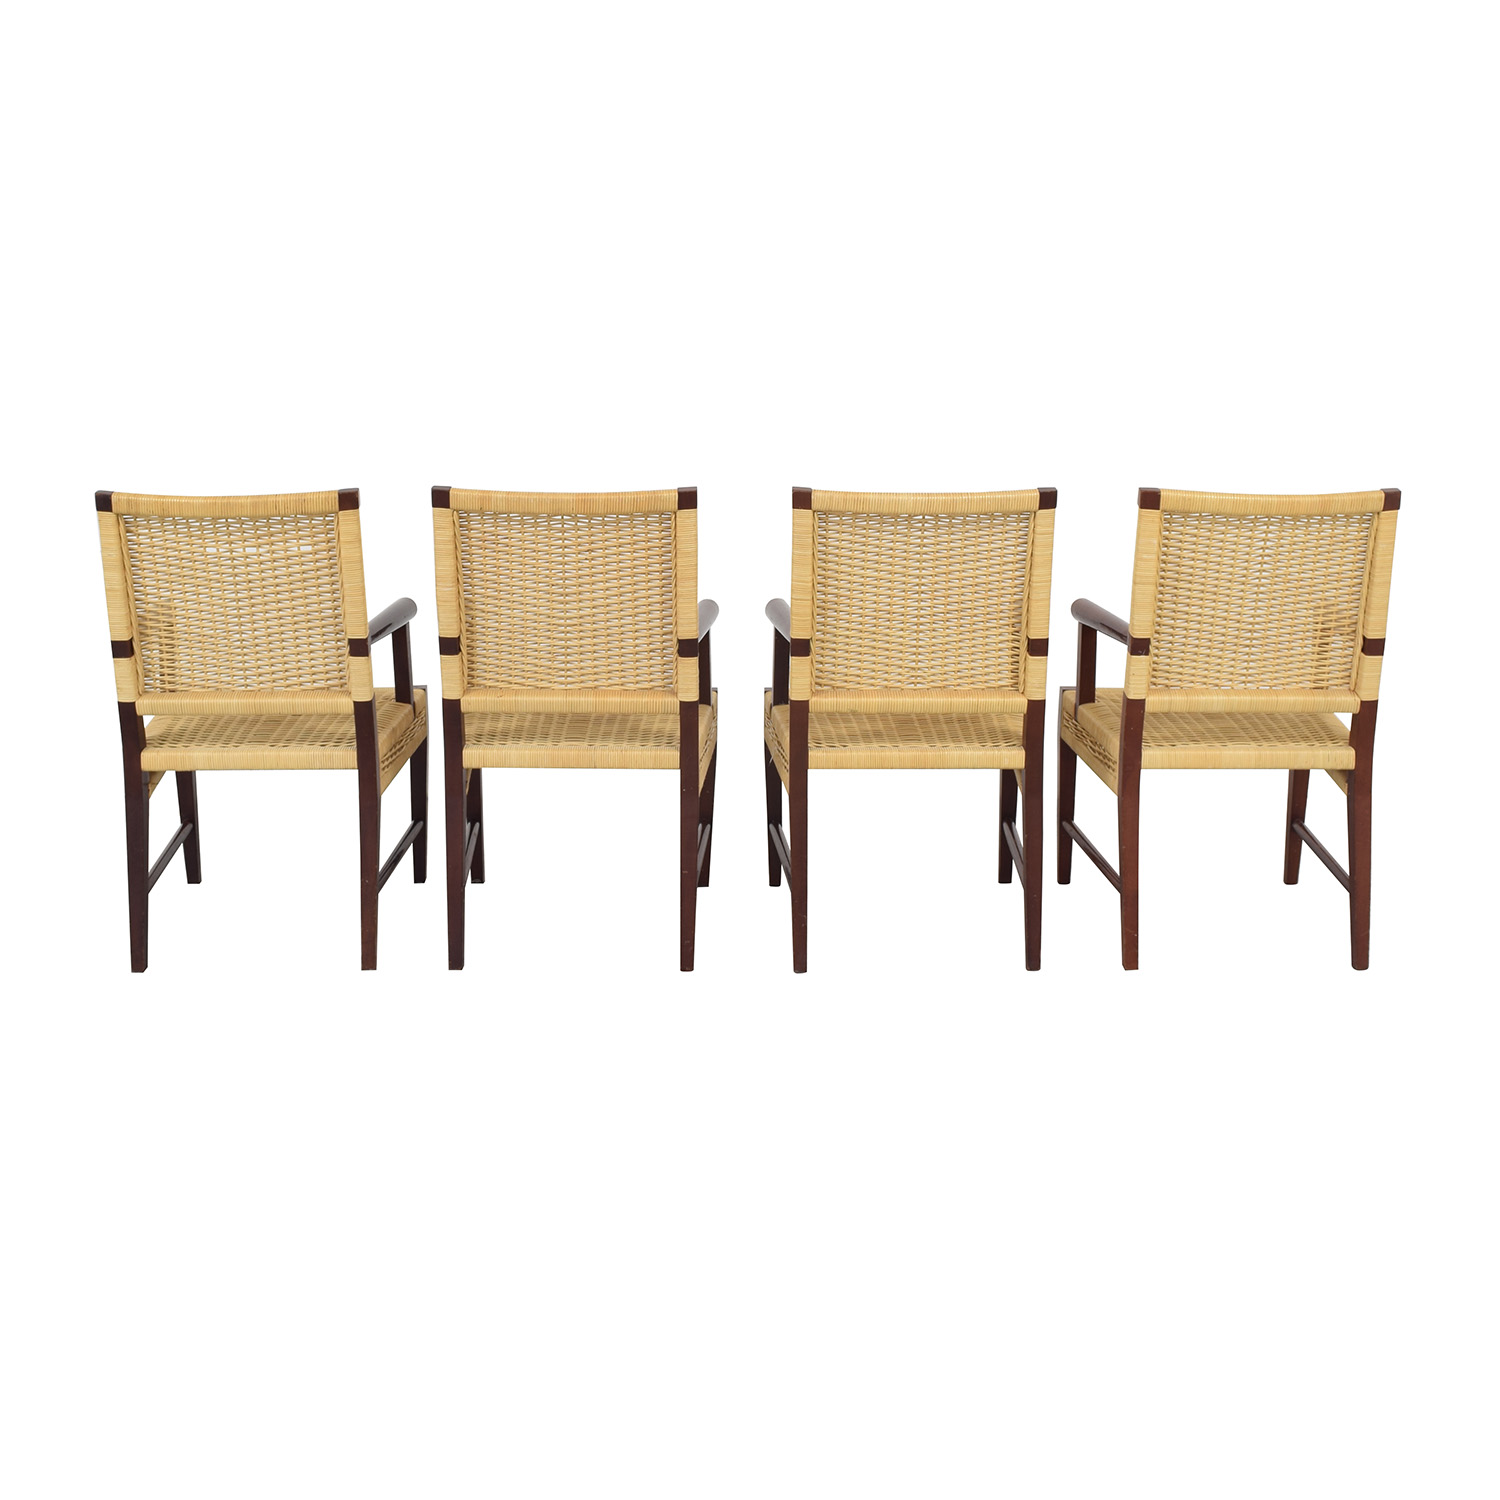 Donghia Donghia Dining Chairs in Merbau Wood with Raffia Weaving ct